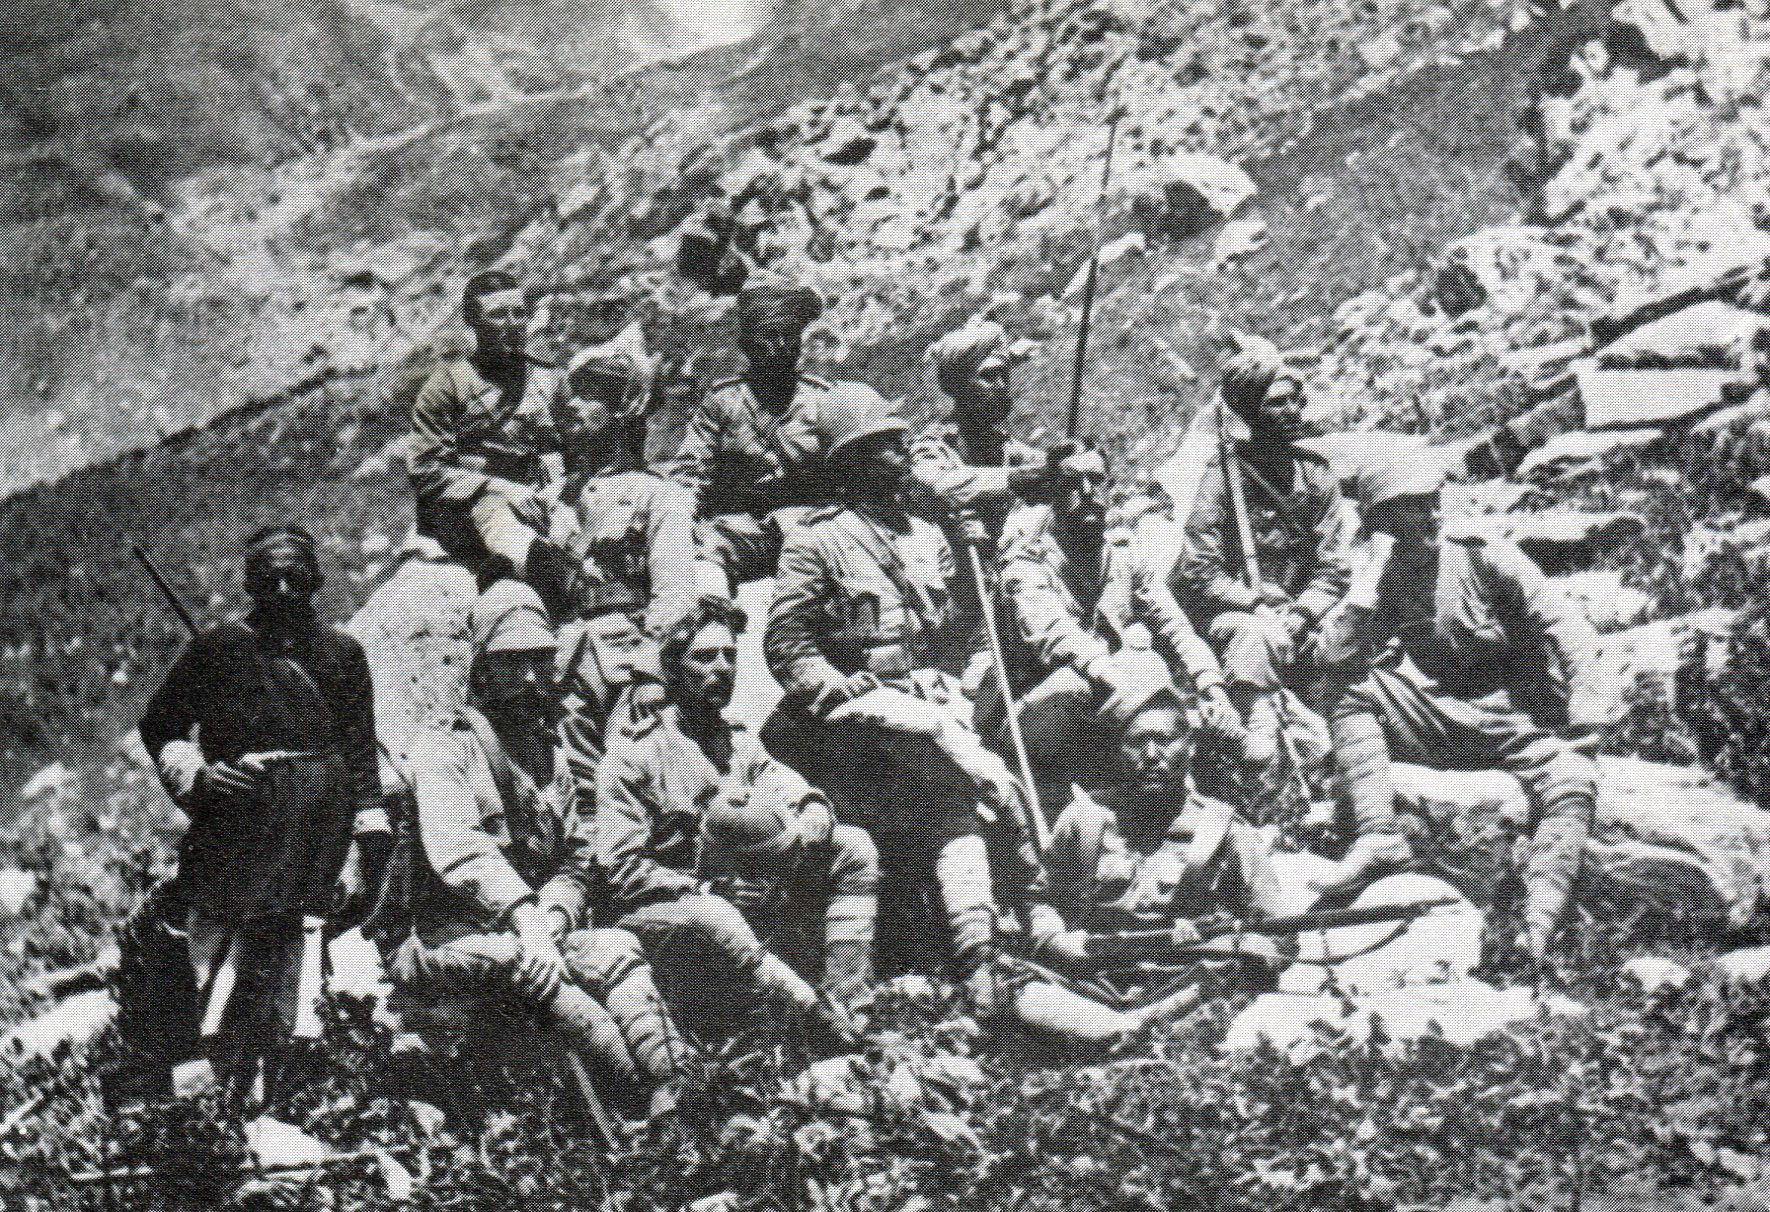 Chitral Relief Force reconnaissance party: Siege and Relief of Chitral, 3rd March to 20th April 1895 on the North-West Frontier of India